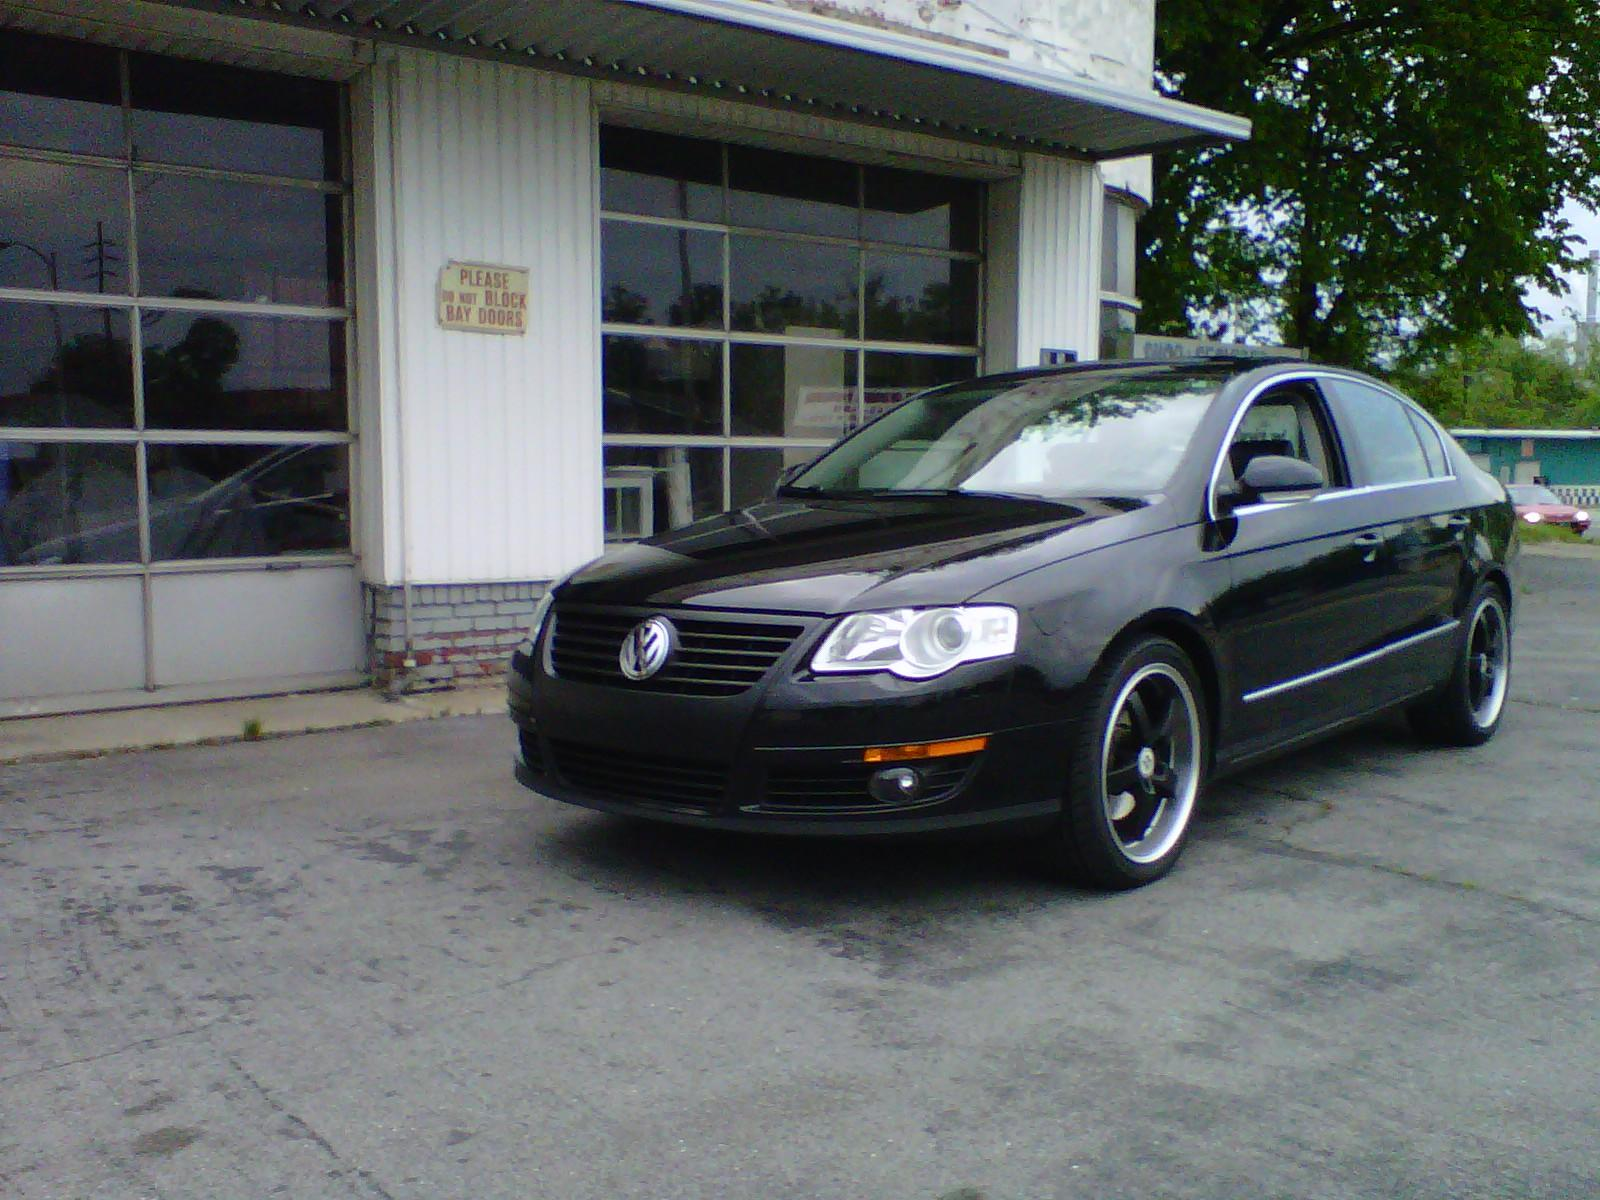 Jbyrd Man 2006 Volkswagen Passat3 6 Sedan 4d Specs Photos Modification Info At Cardomain